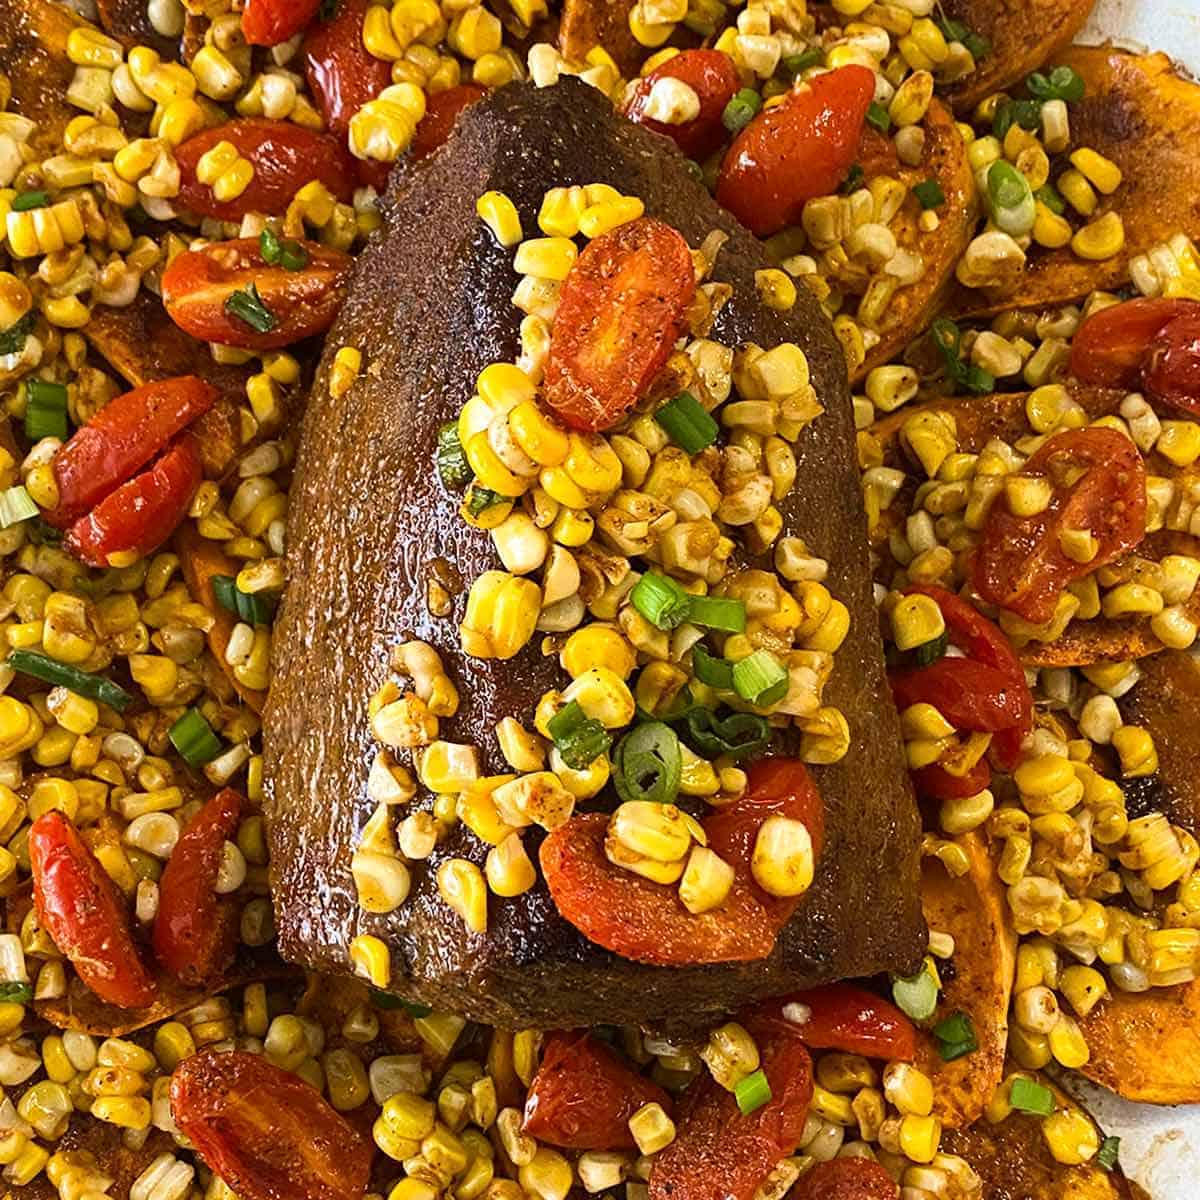 Eye of round roast on a bed of sweet potatoes with corn and tomatoes